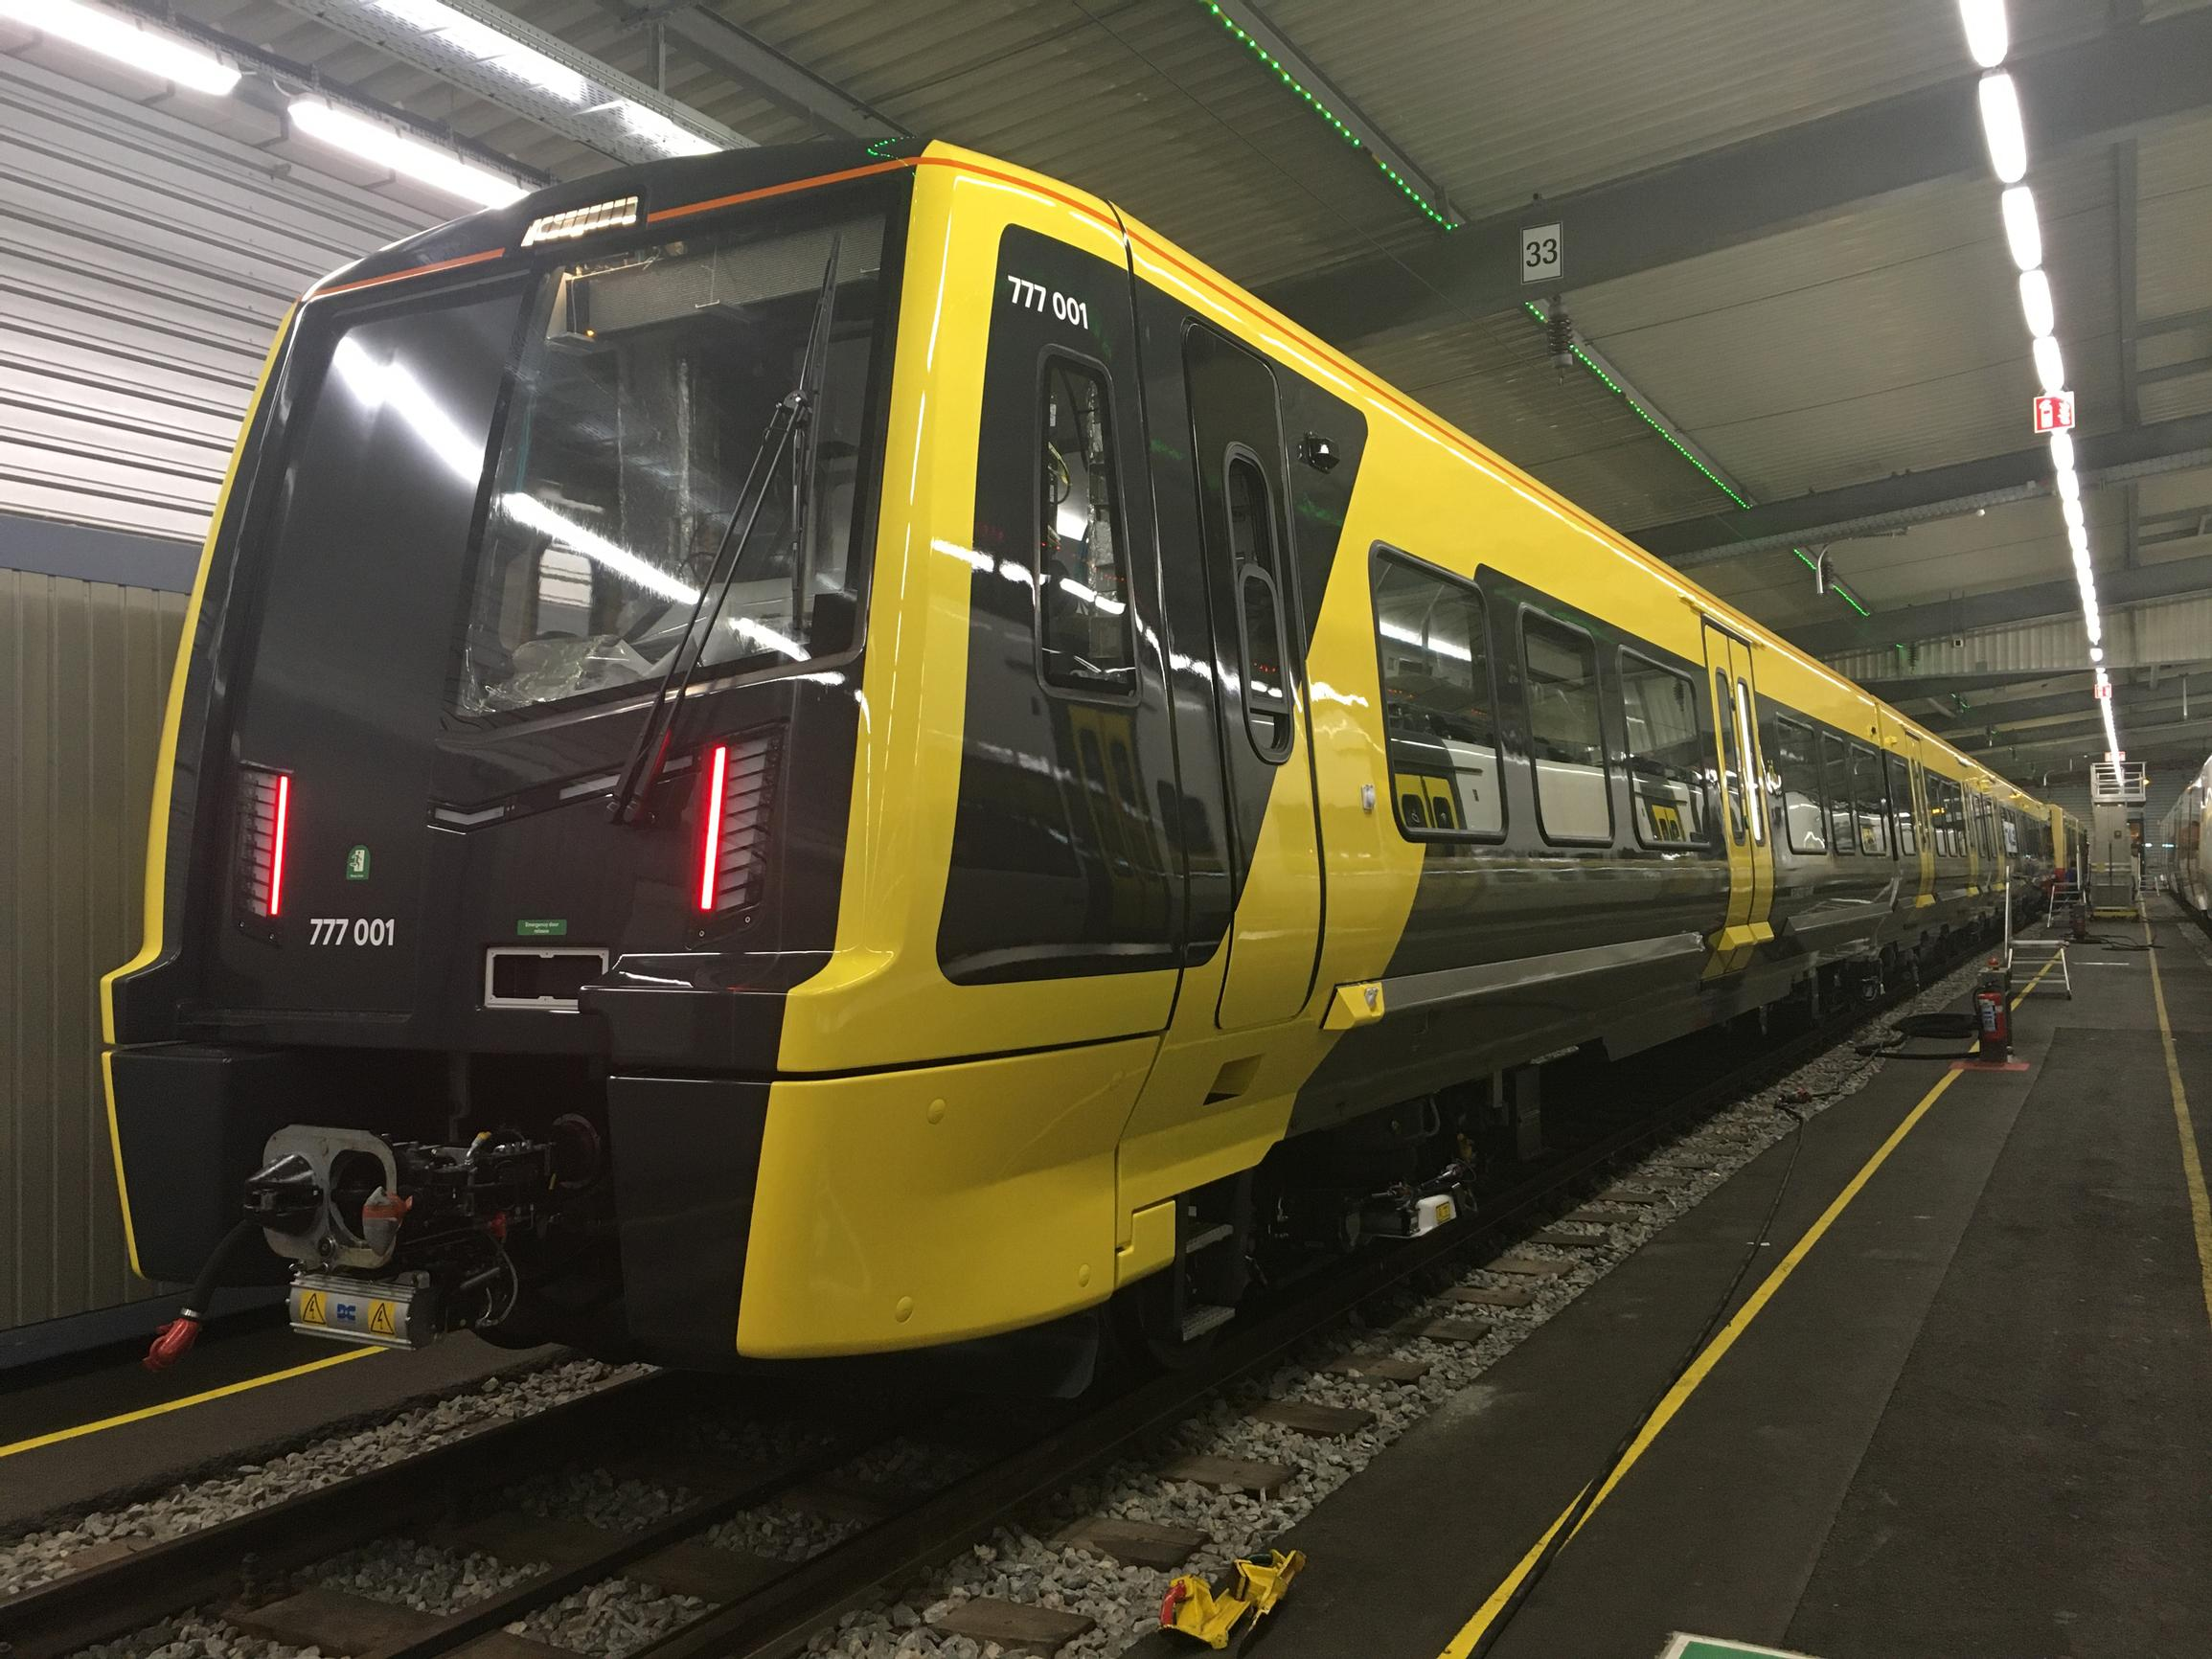 The first of the new Merseyrail trains under test in Germany